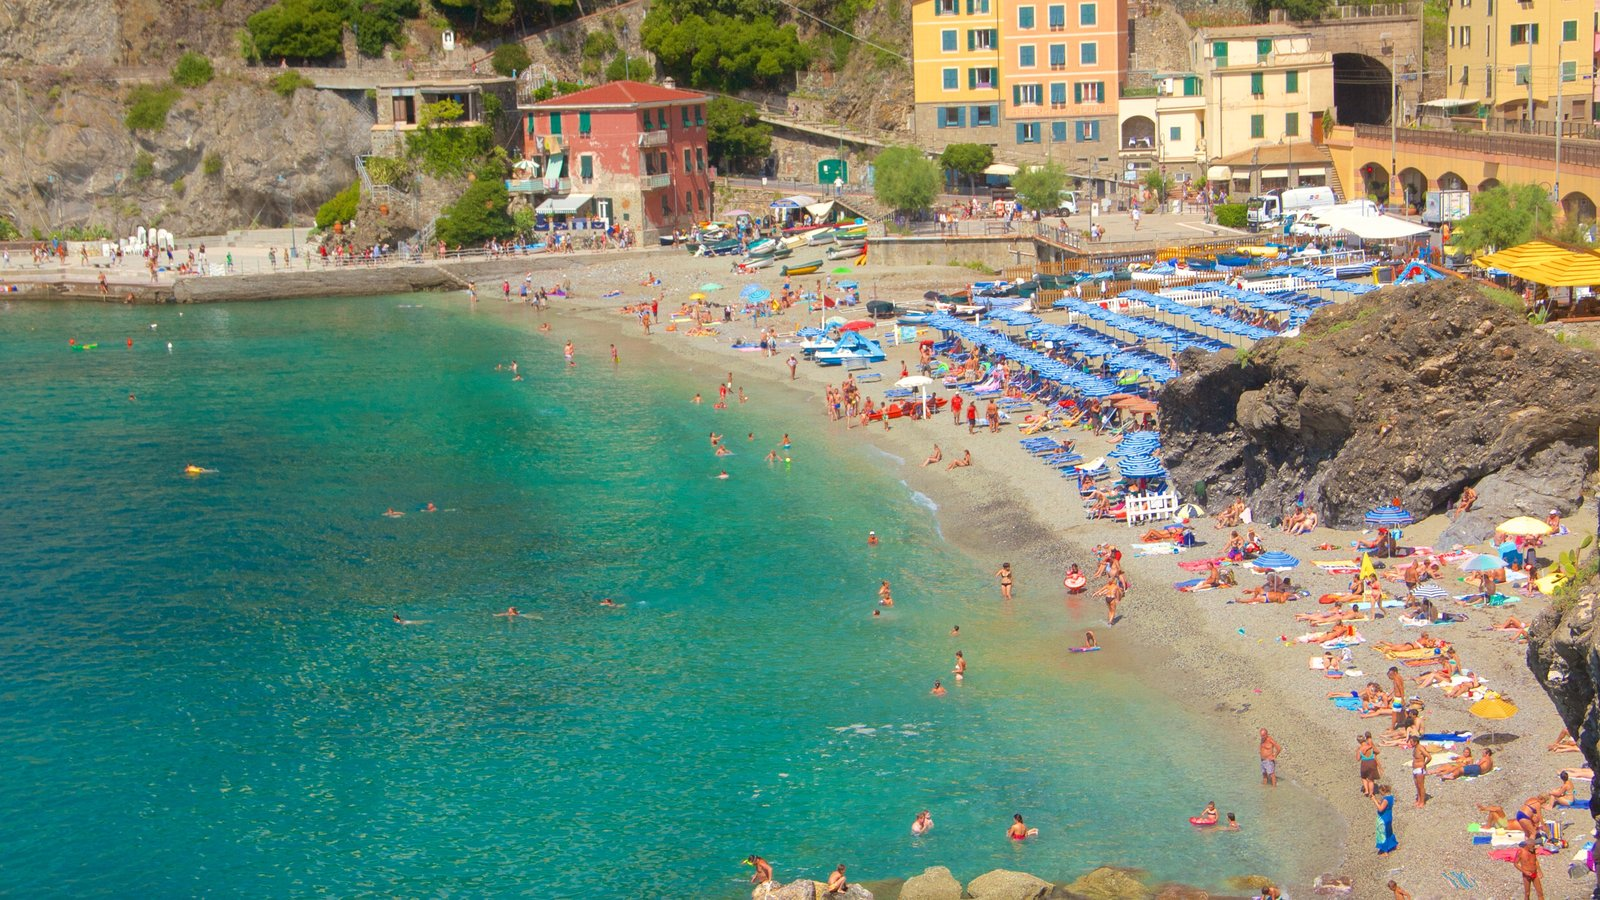 Monterosso Beach featuring a luxury hotel or resort, a sandy beach and general coastal views